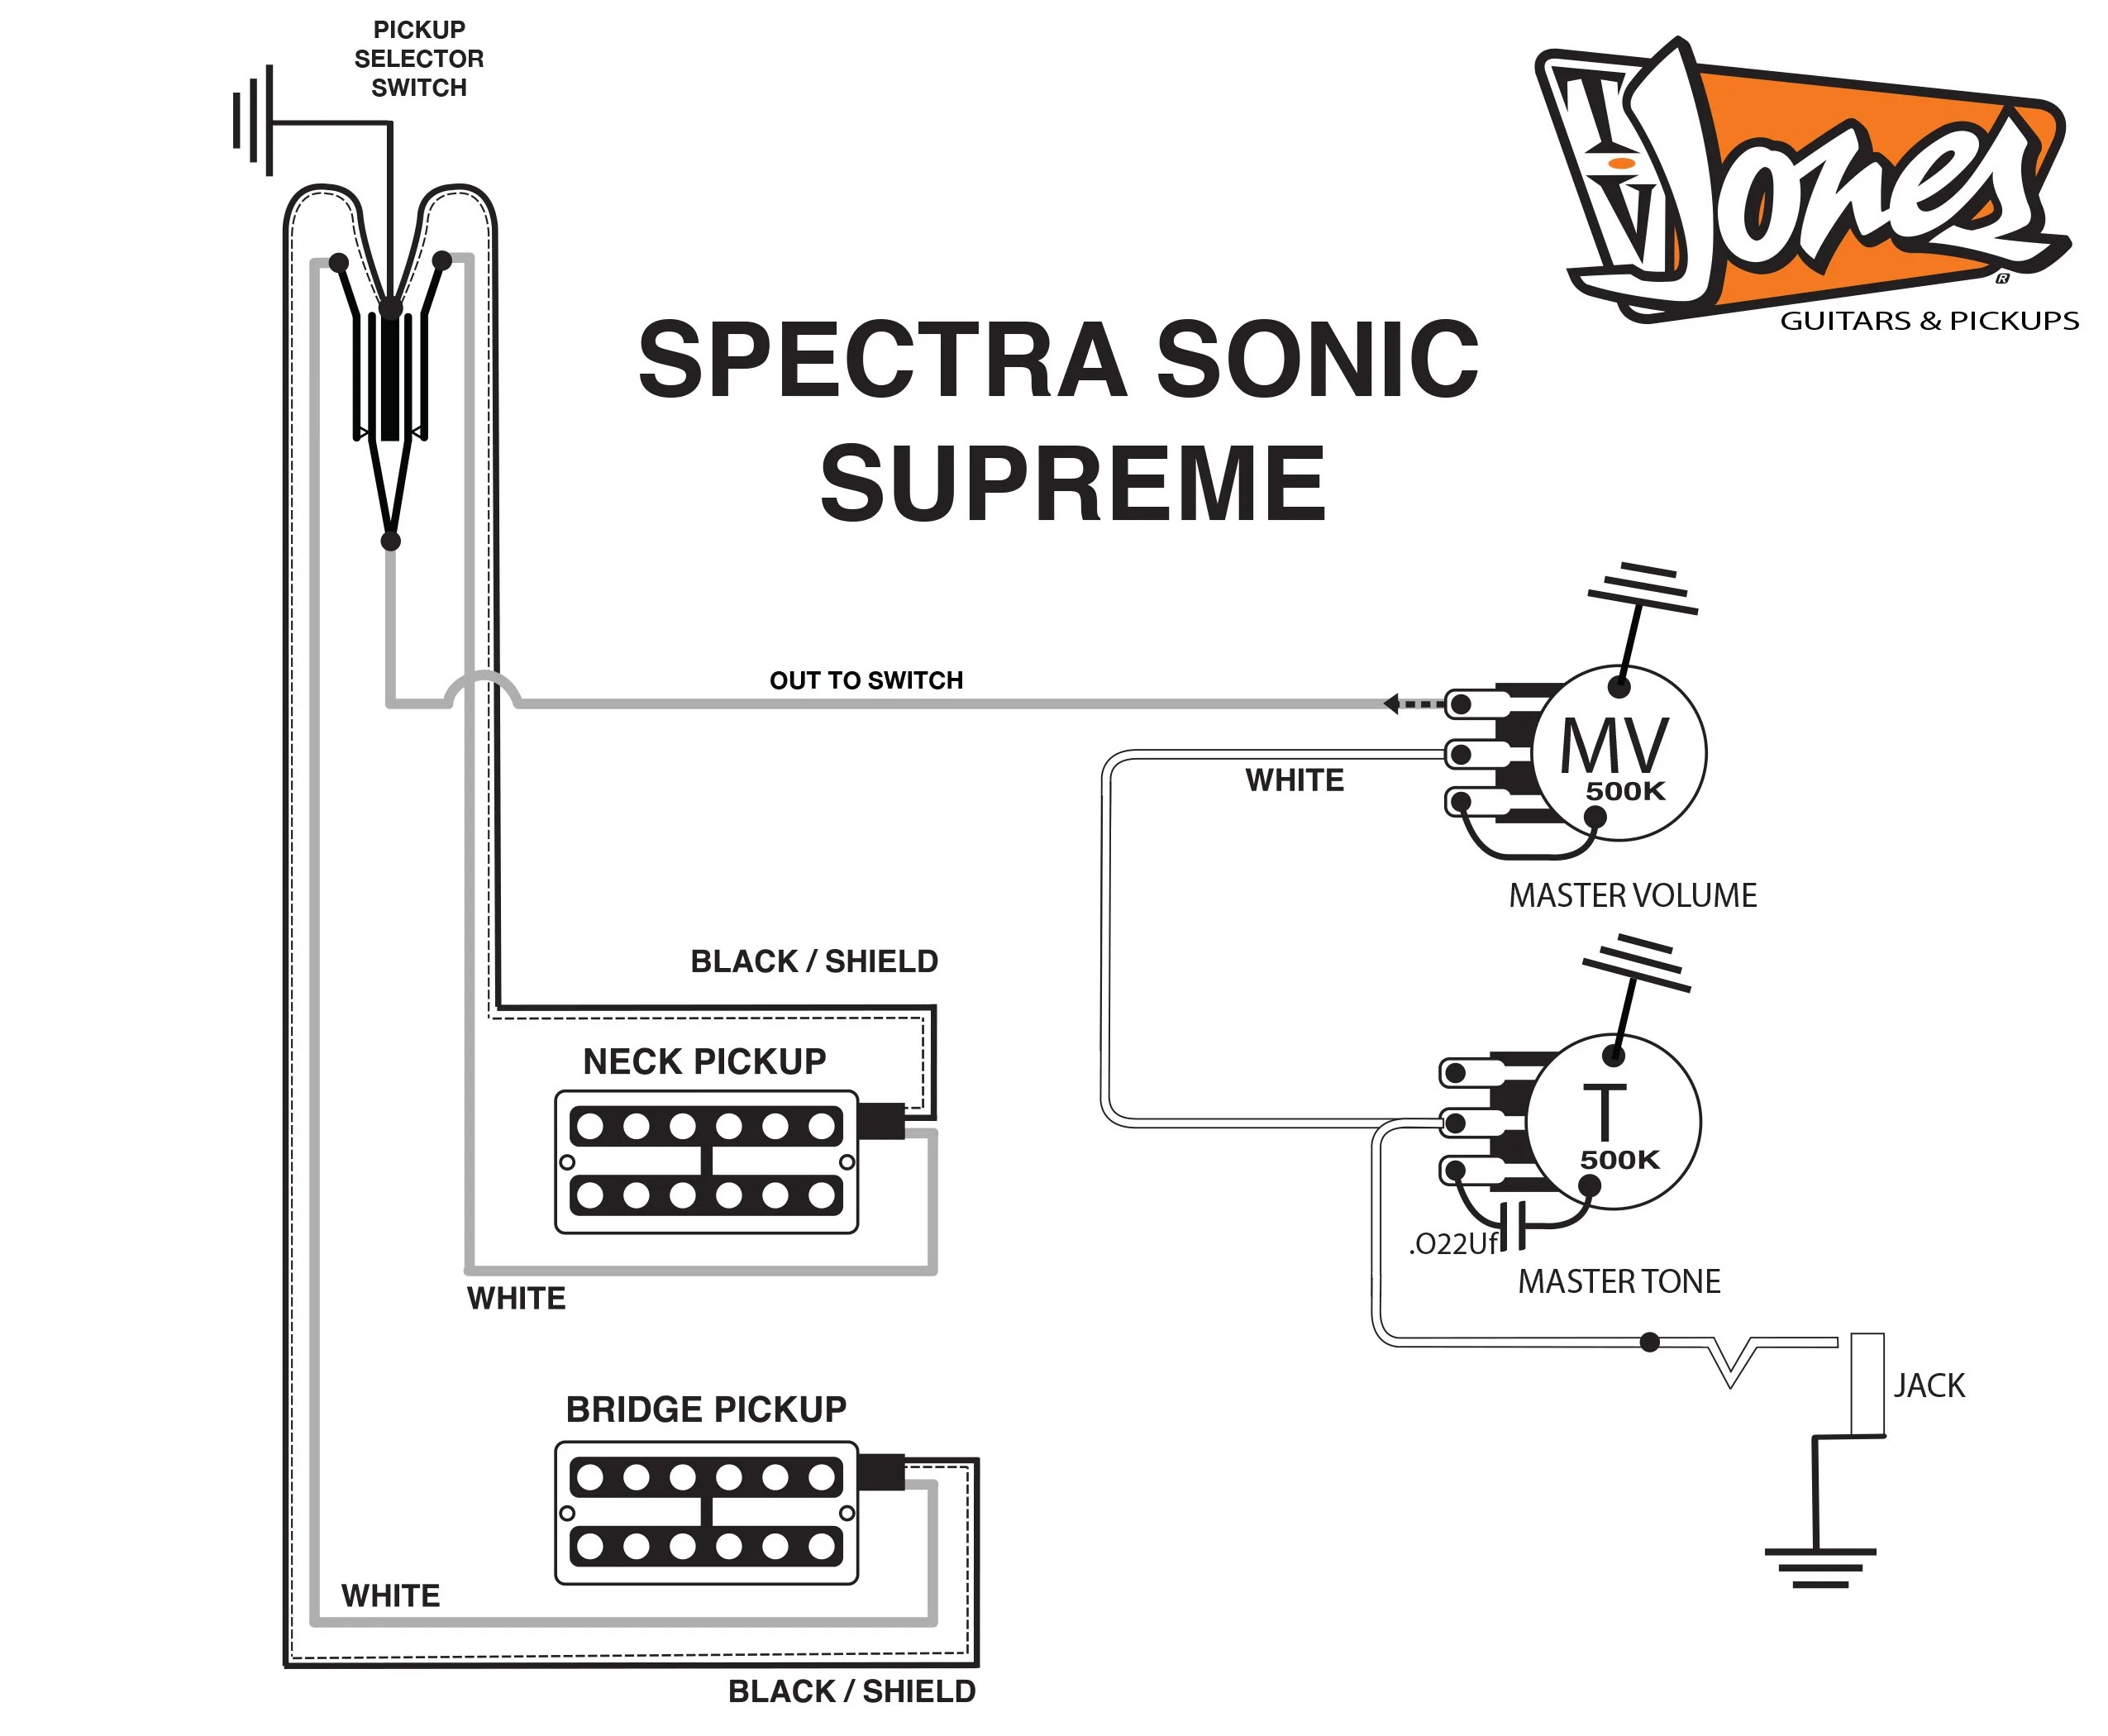 hight resolution of tv jones guitar schematics